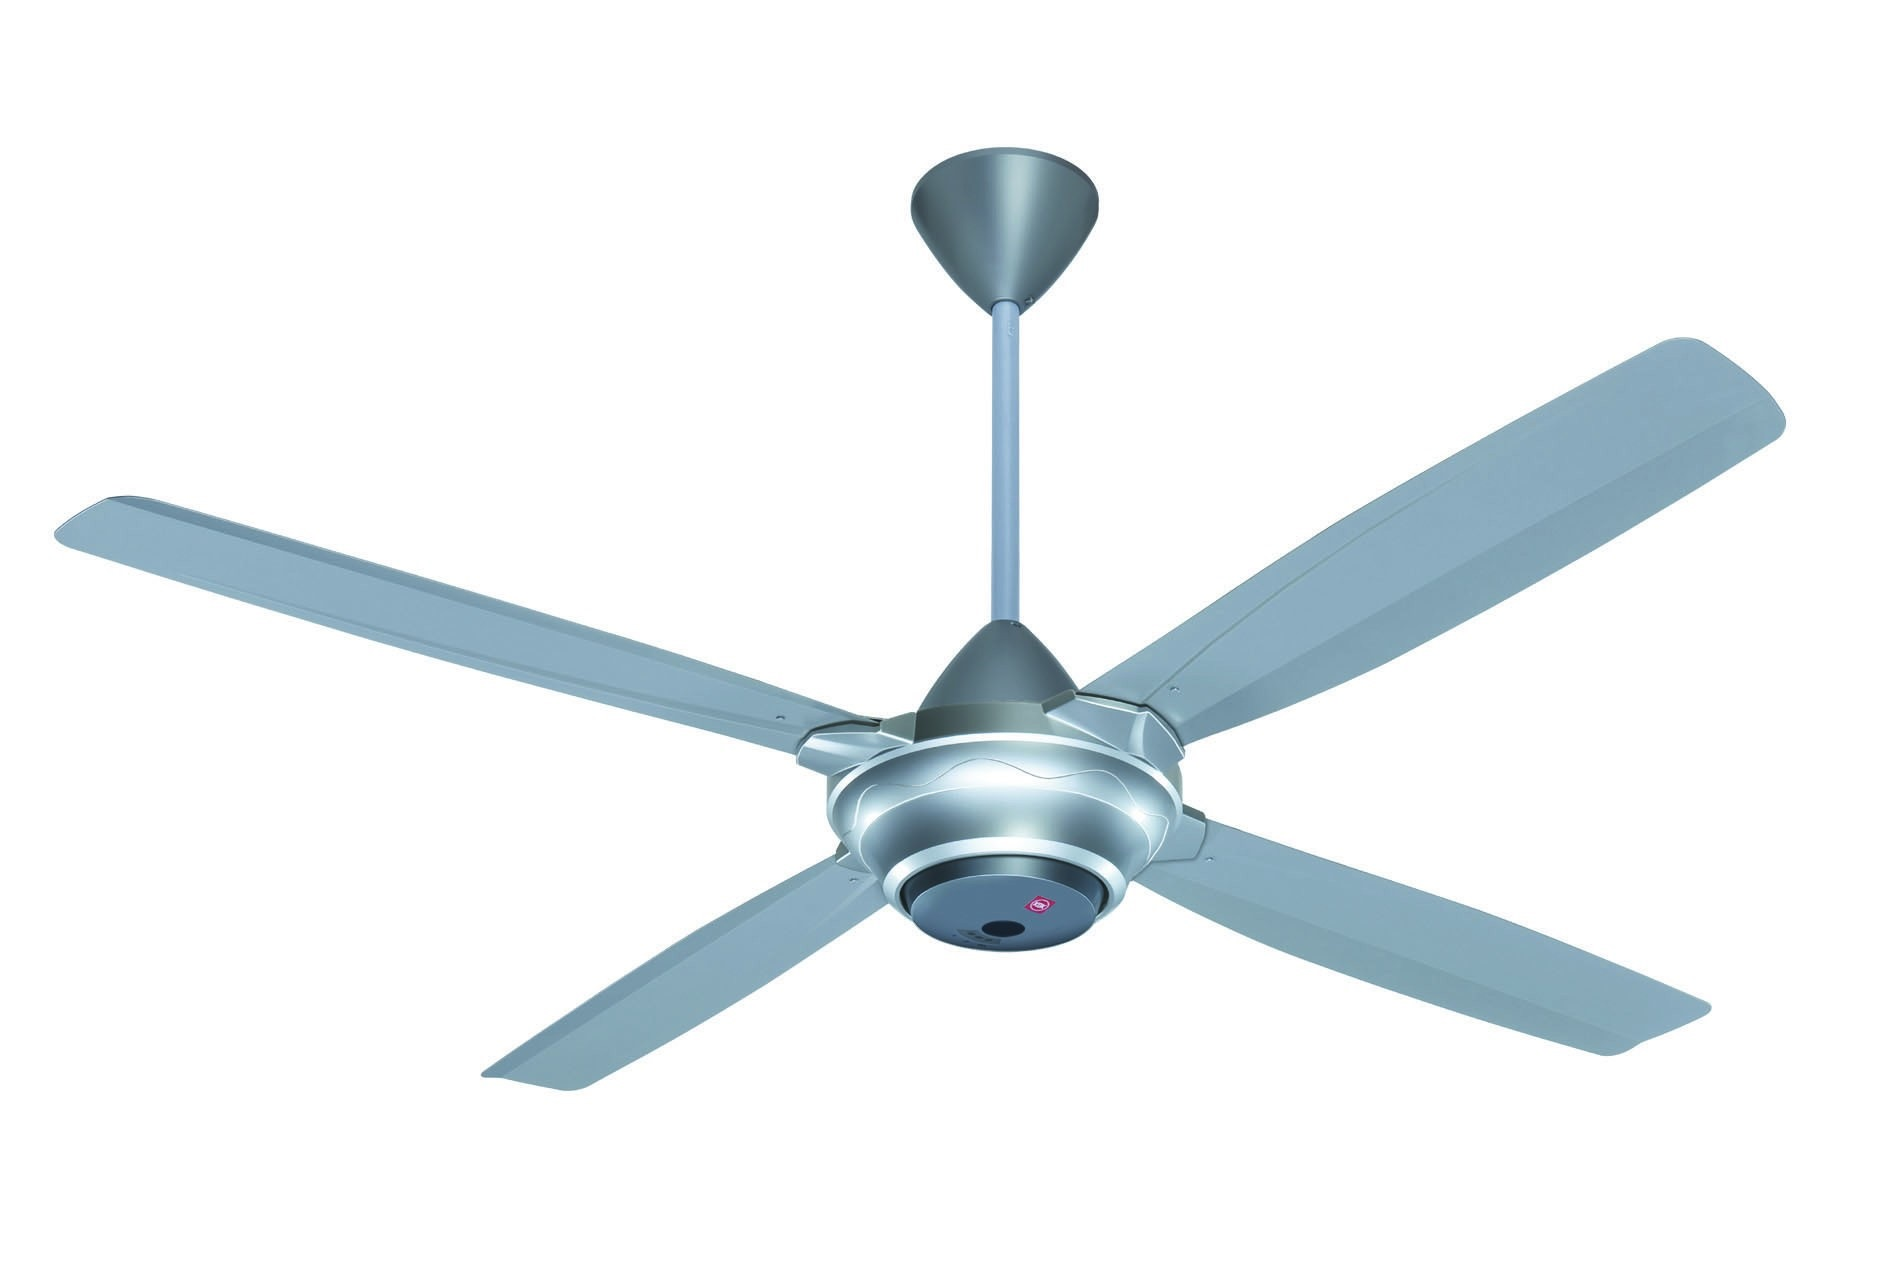 Electrical Ceiling Fans : Kdk blade ceiling fan cm with remote m sr fans